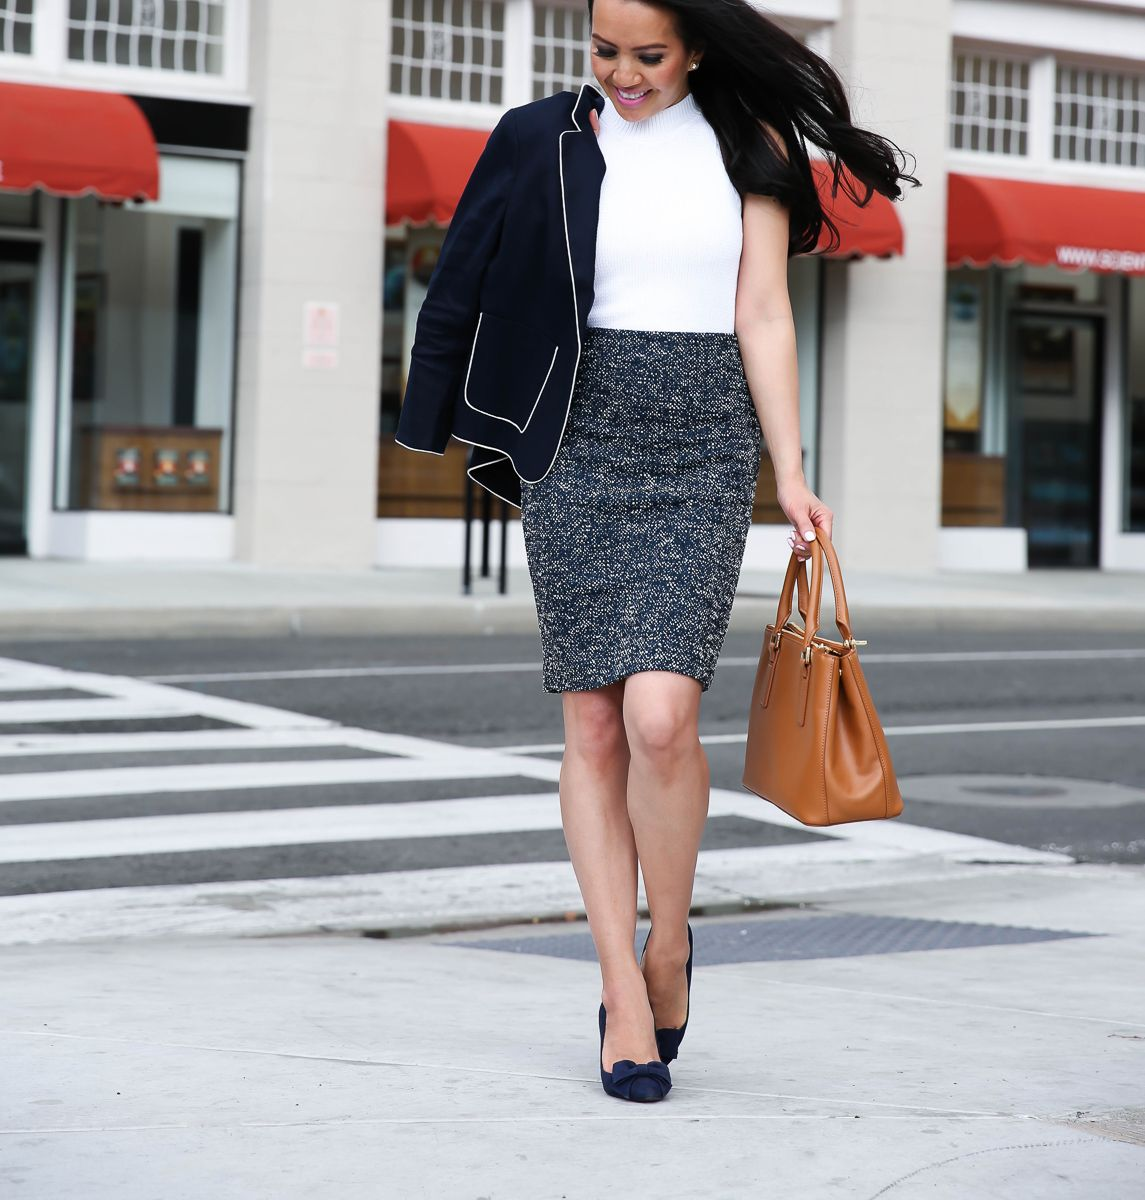 ce01c69f71 Classic spring work business outfit -tweed pencil skirt, navy blazer, bow  pumps, cognac purse